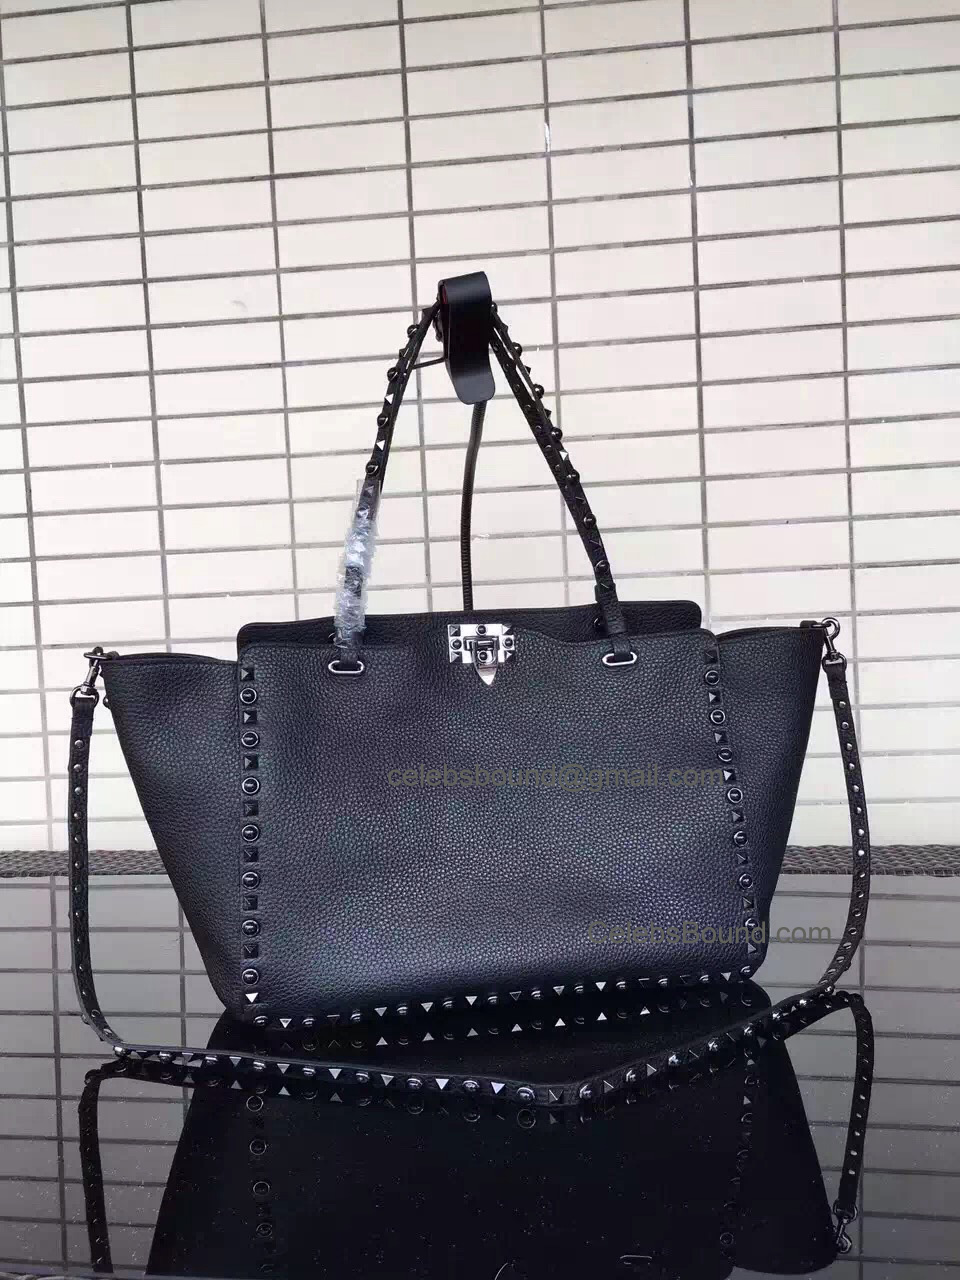 Replica Valentino Rockstud Rolling Noir Medium Tote with Black Stones